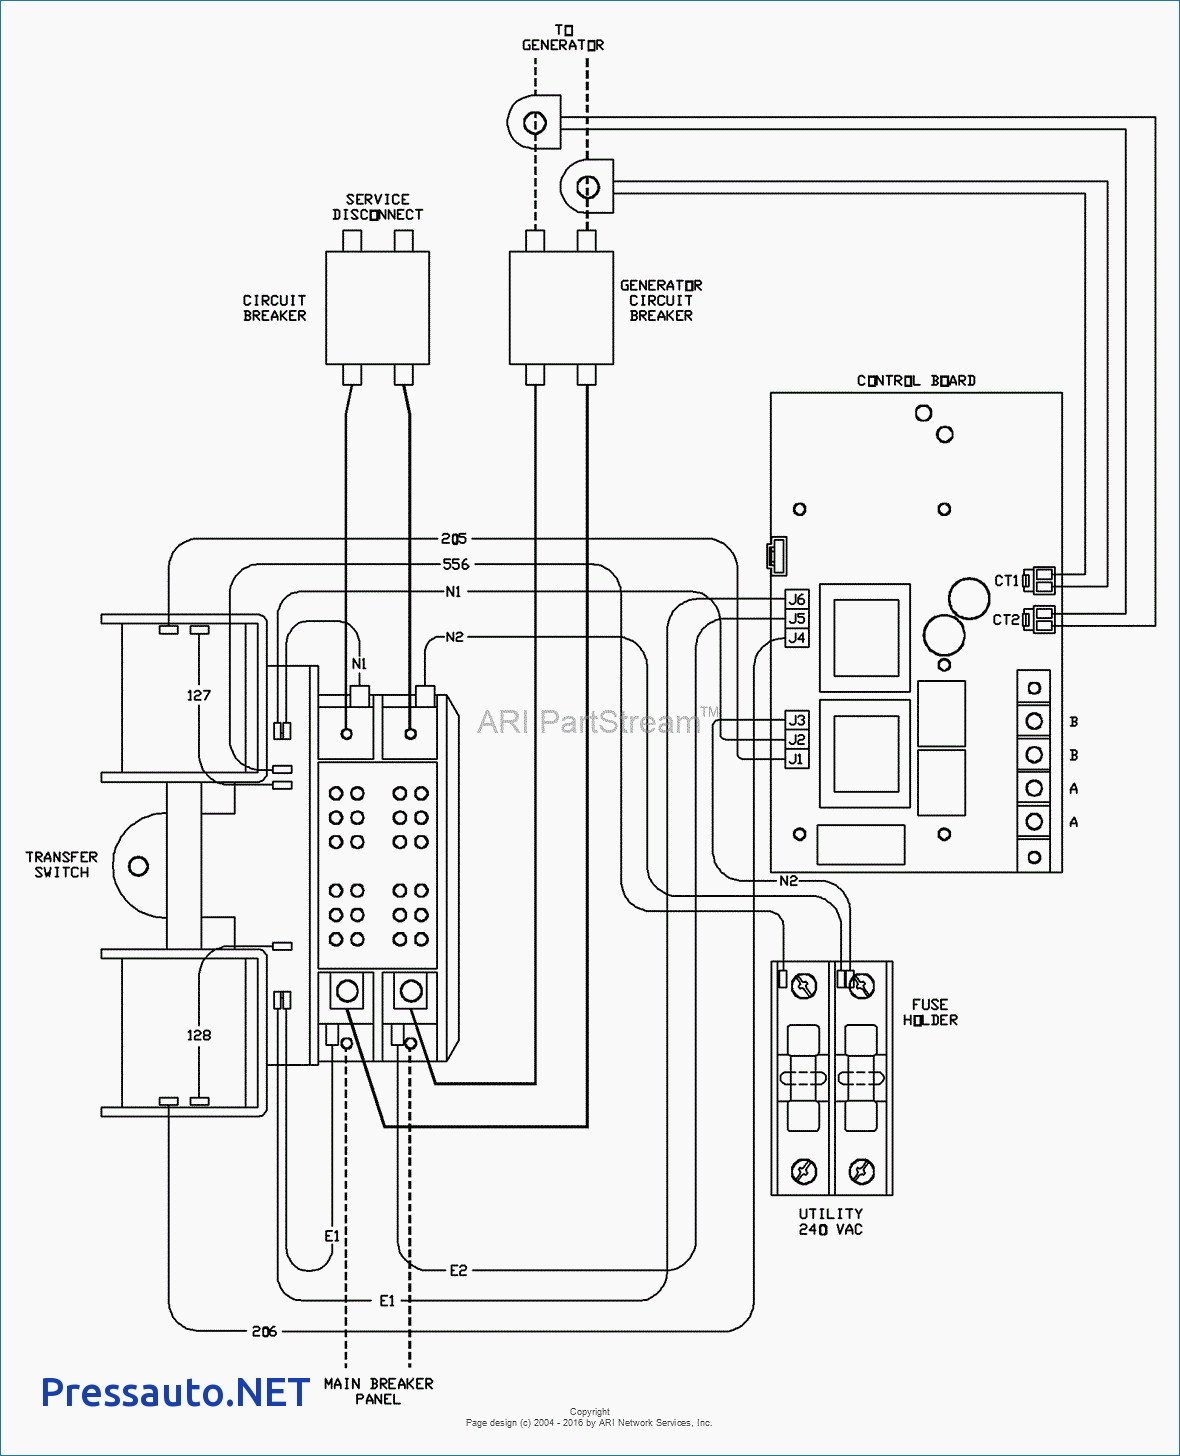 reliance manual transfer switch wiring diagram denso alternator mopar collection